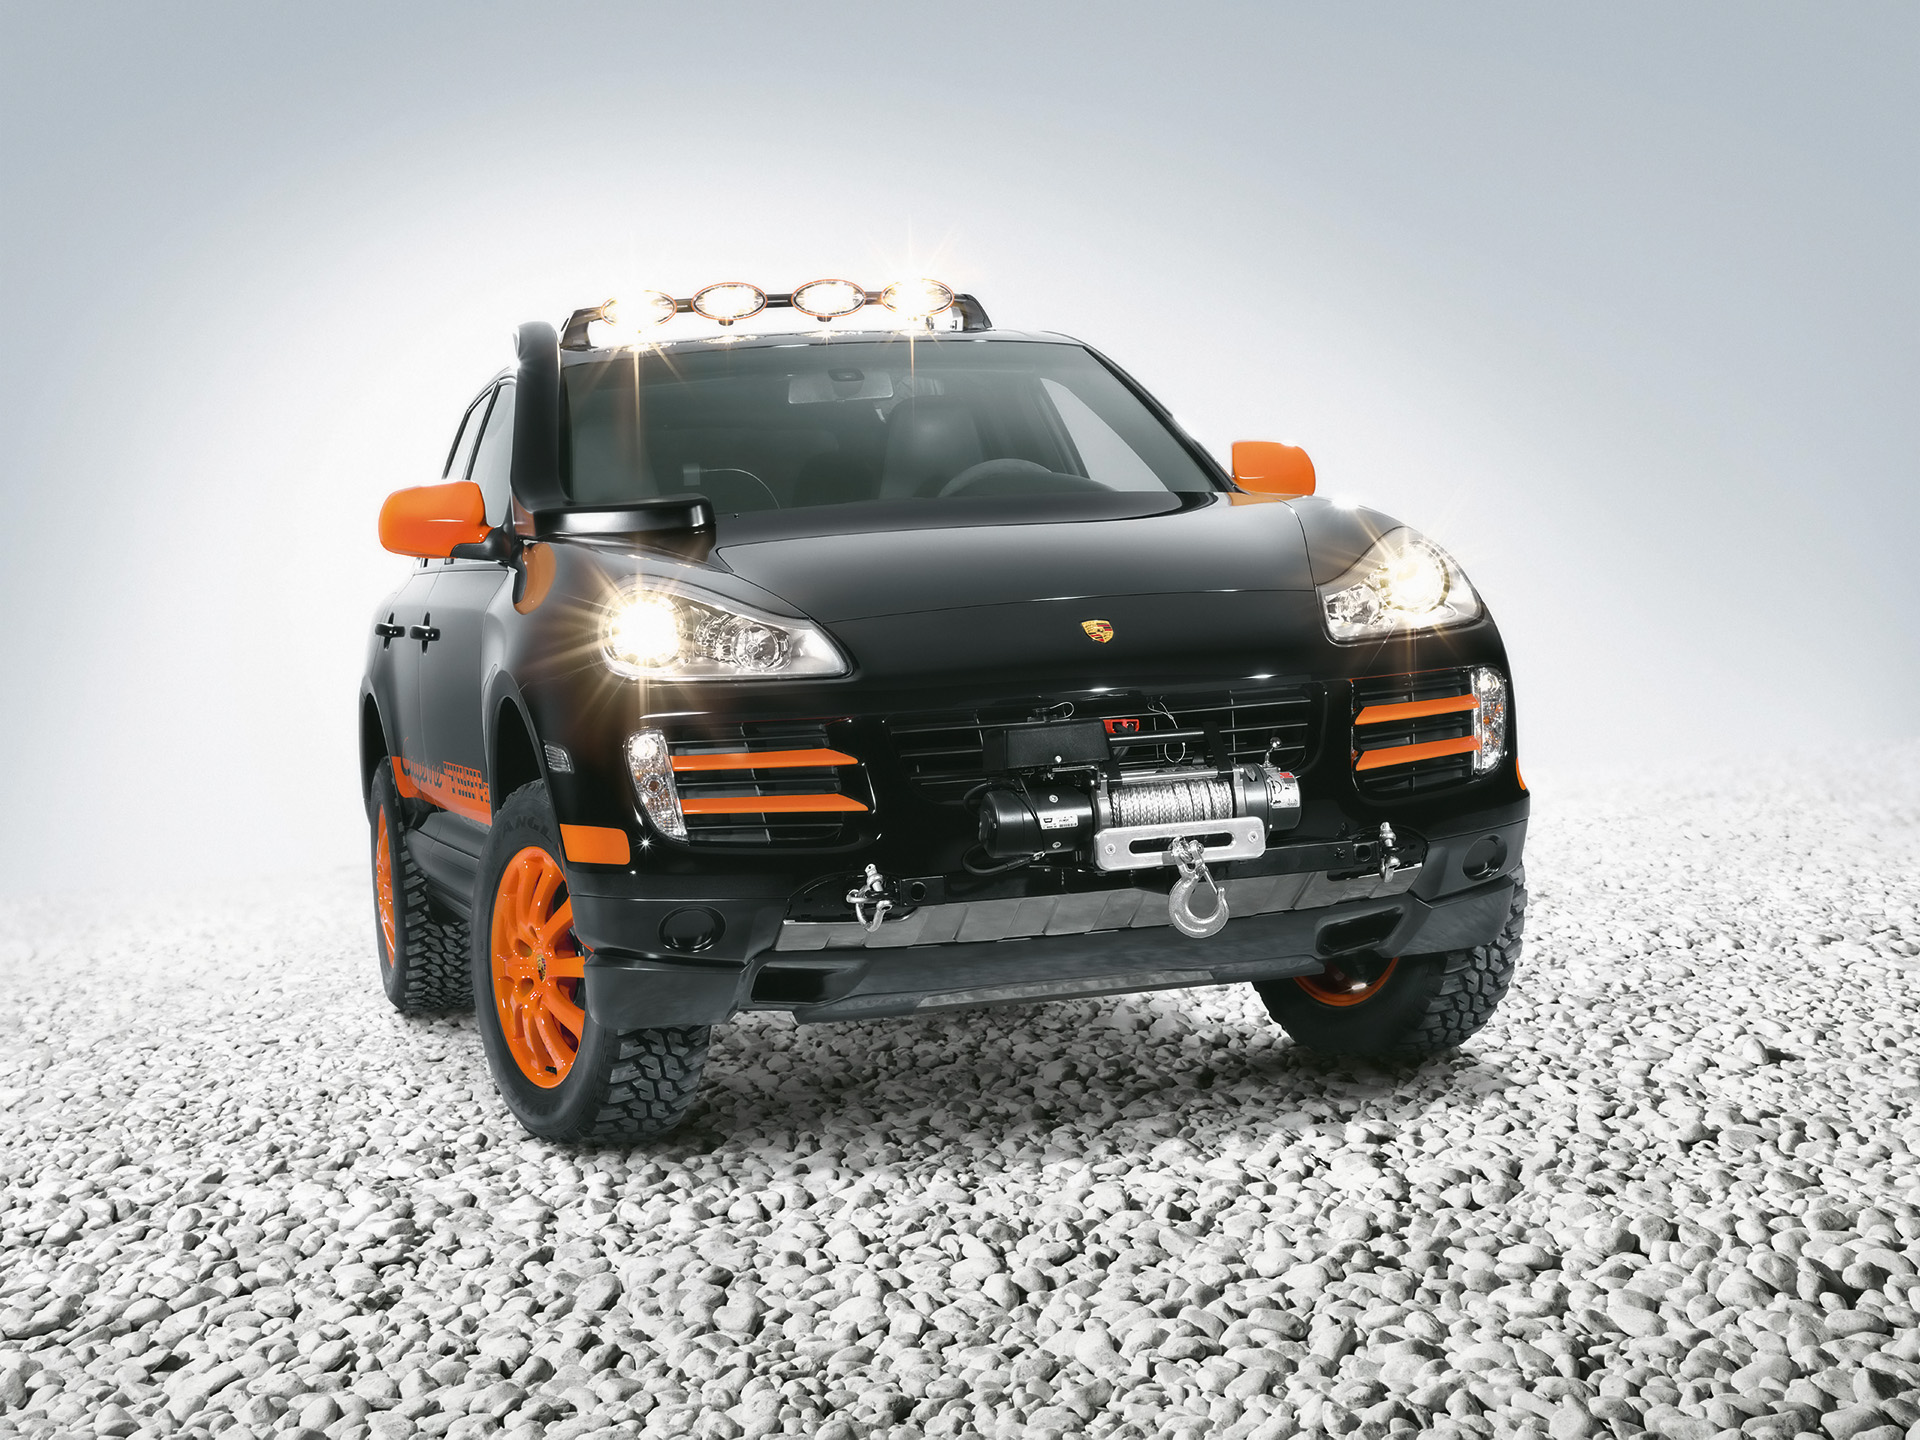 2007 Porsche Cayenne S Transsyberia History, Pictures, Value, Auction Sales, Research and News